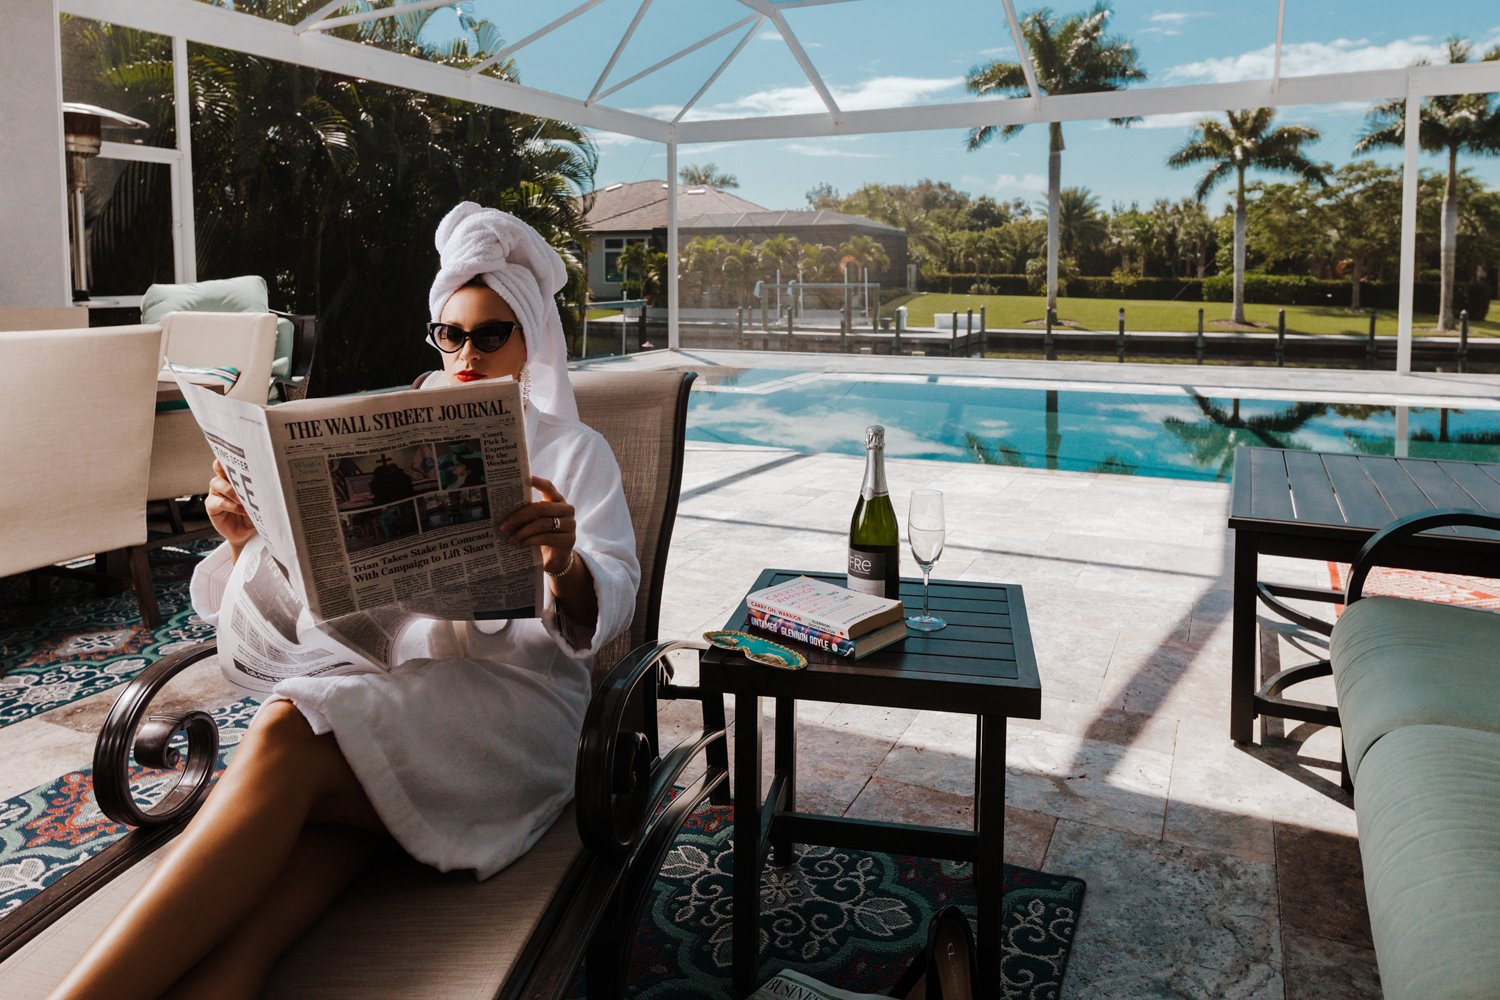 cape coral woman wearing bathrobe reading newspaper by the pool